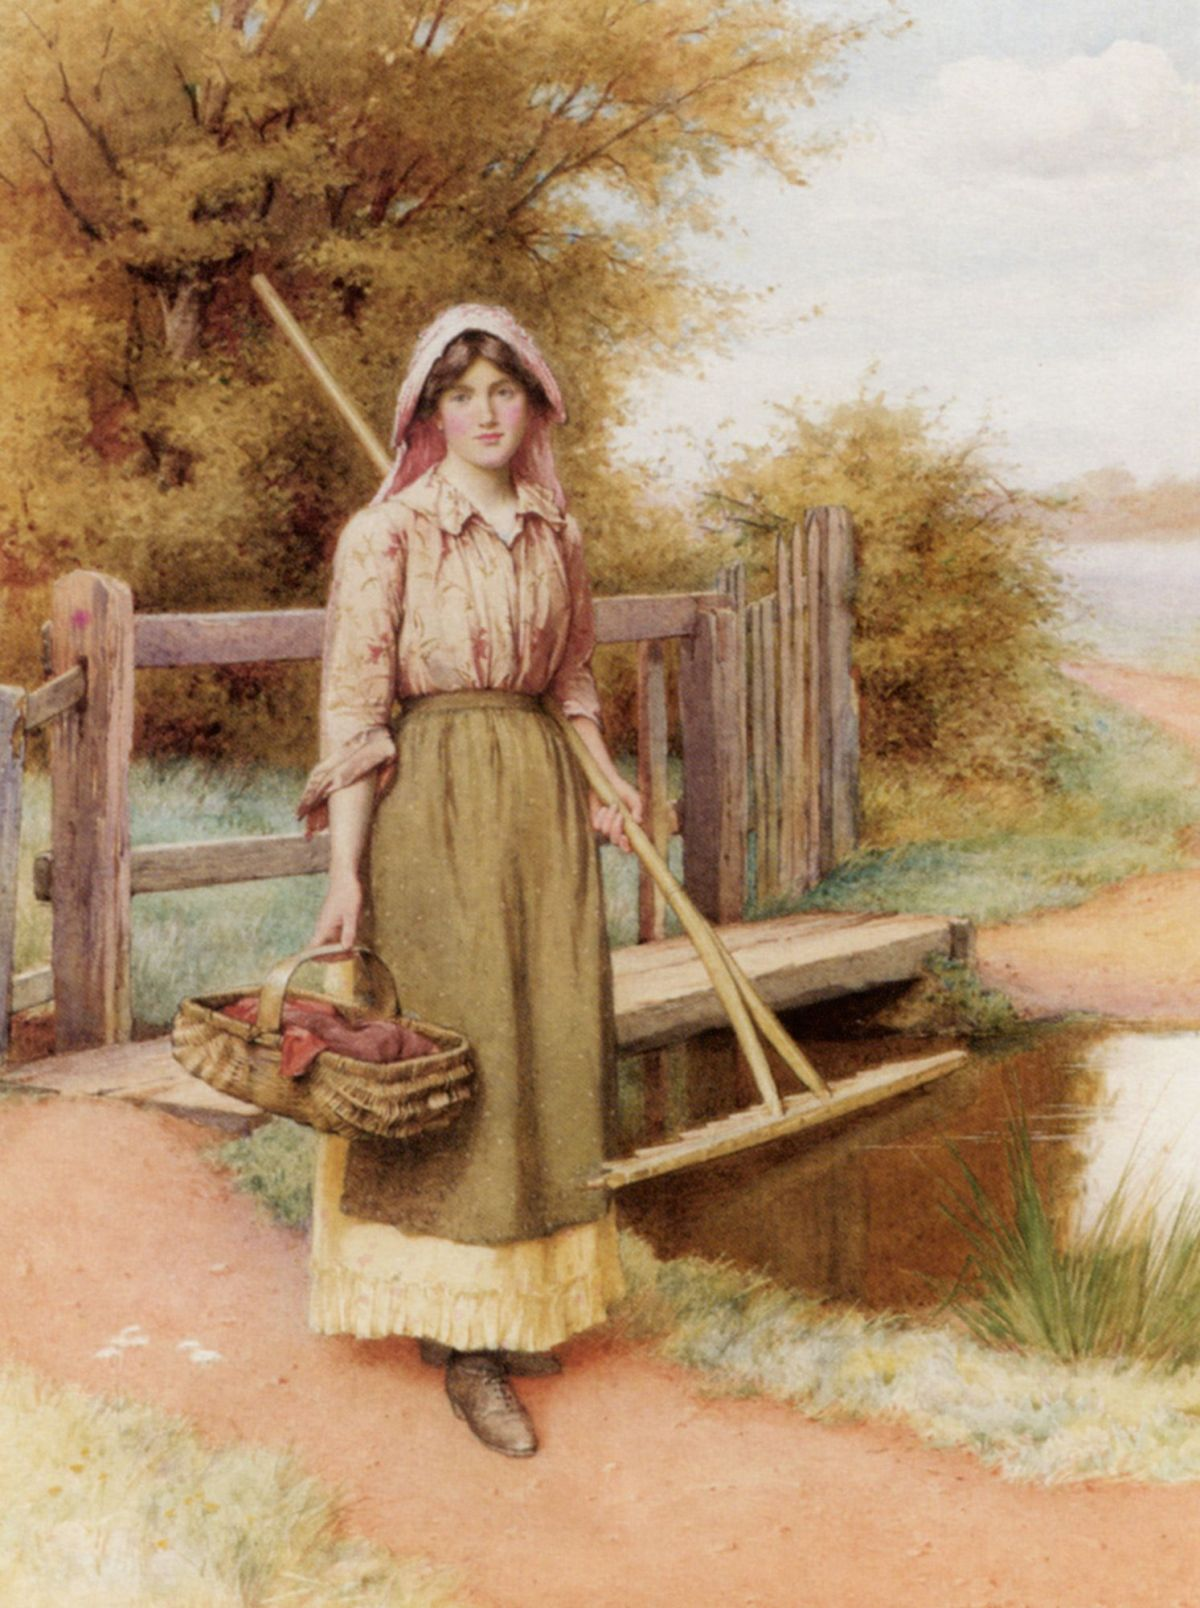 On The Way to the Hayfield by Charles Edward Wilson